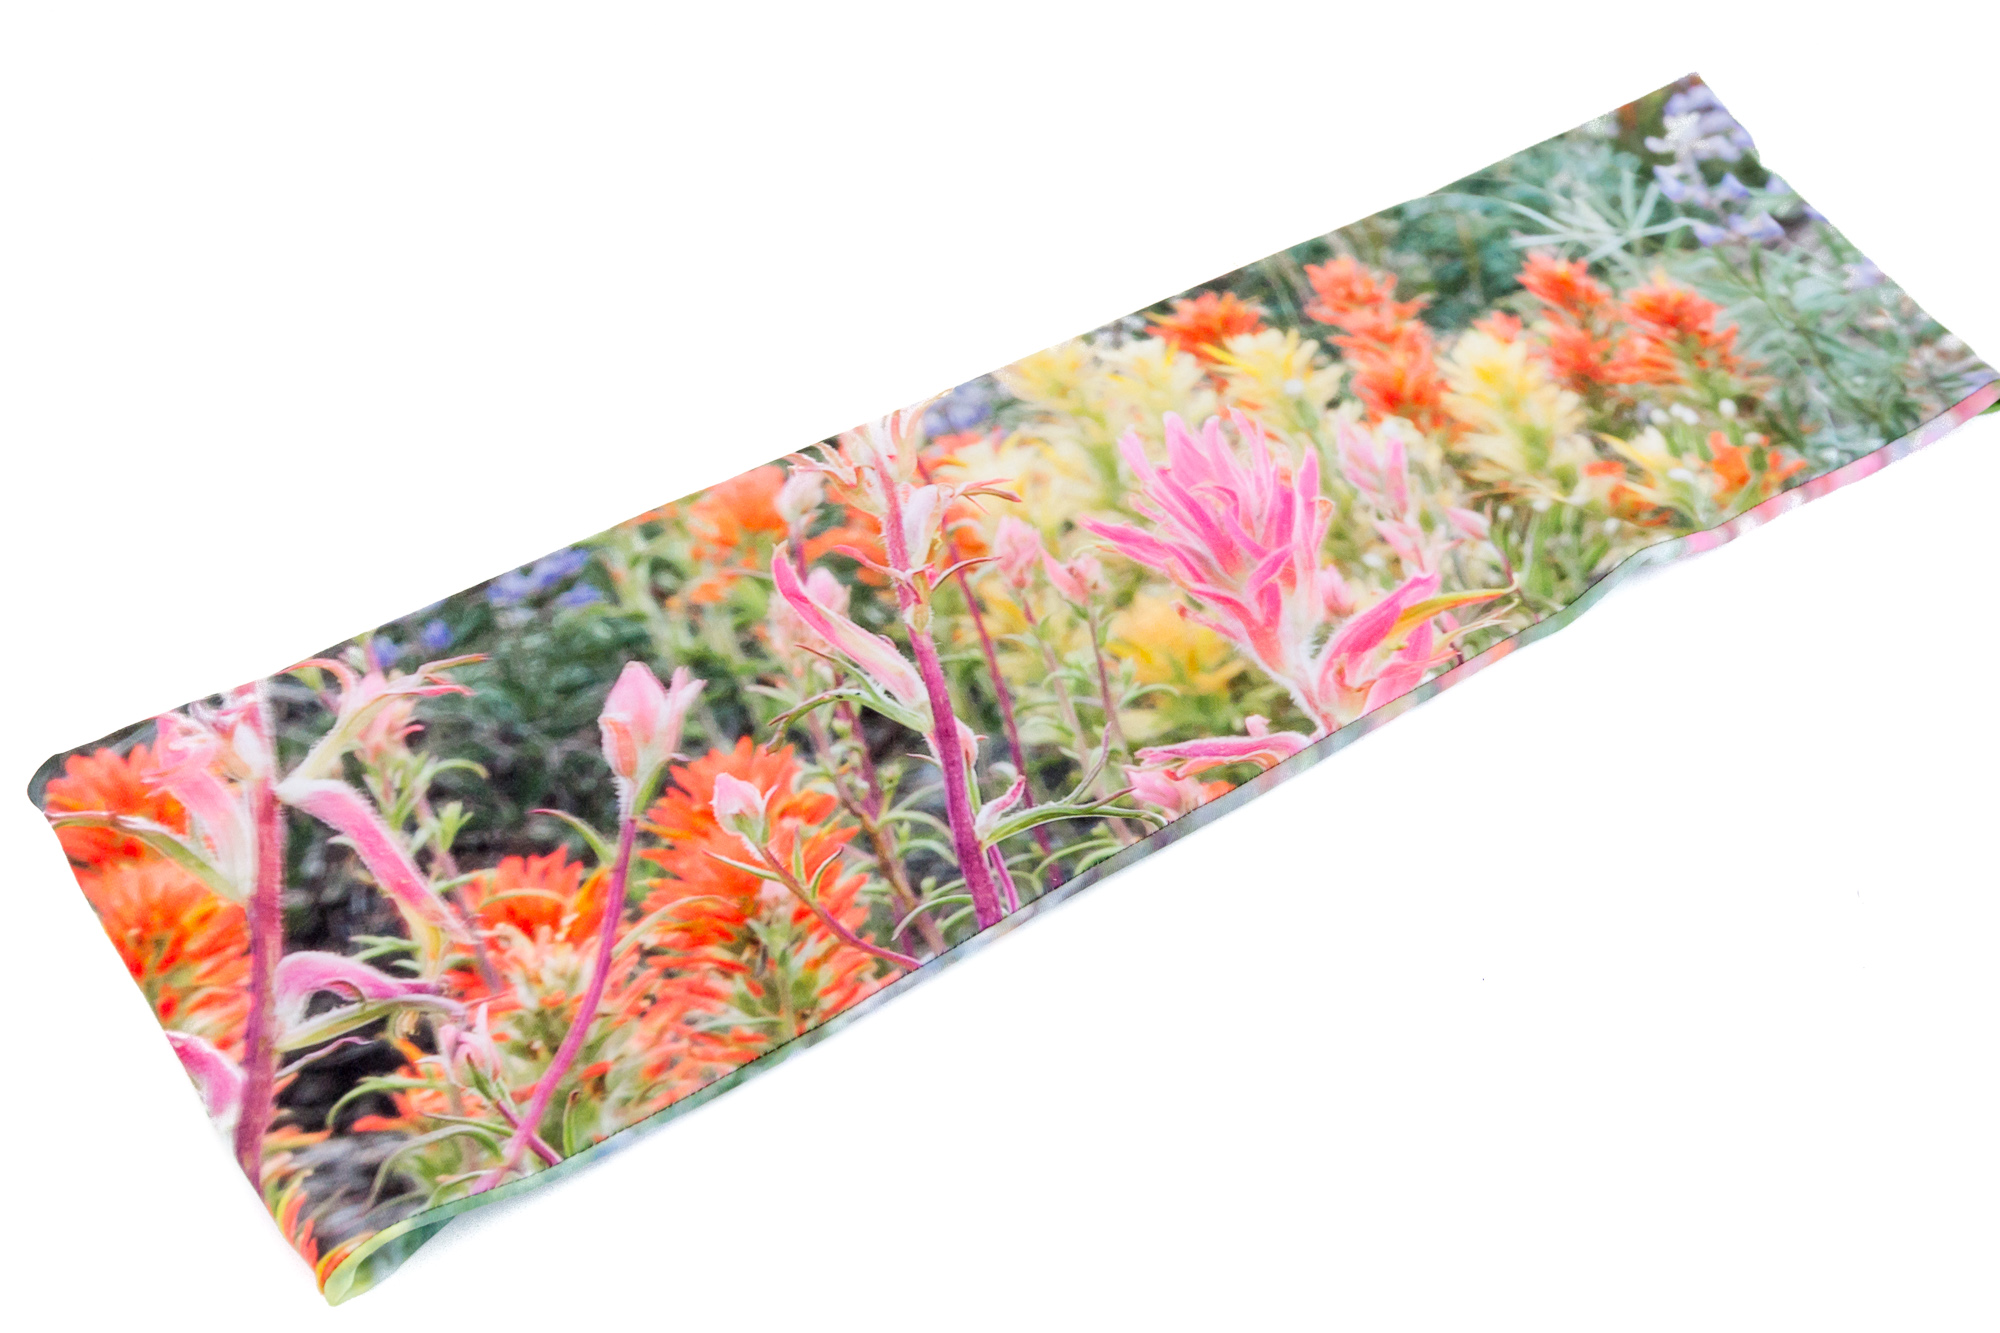 Colorful Infinity Scarf With Sierra Wildflowers